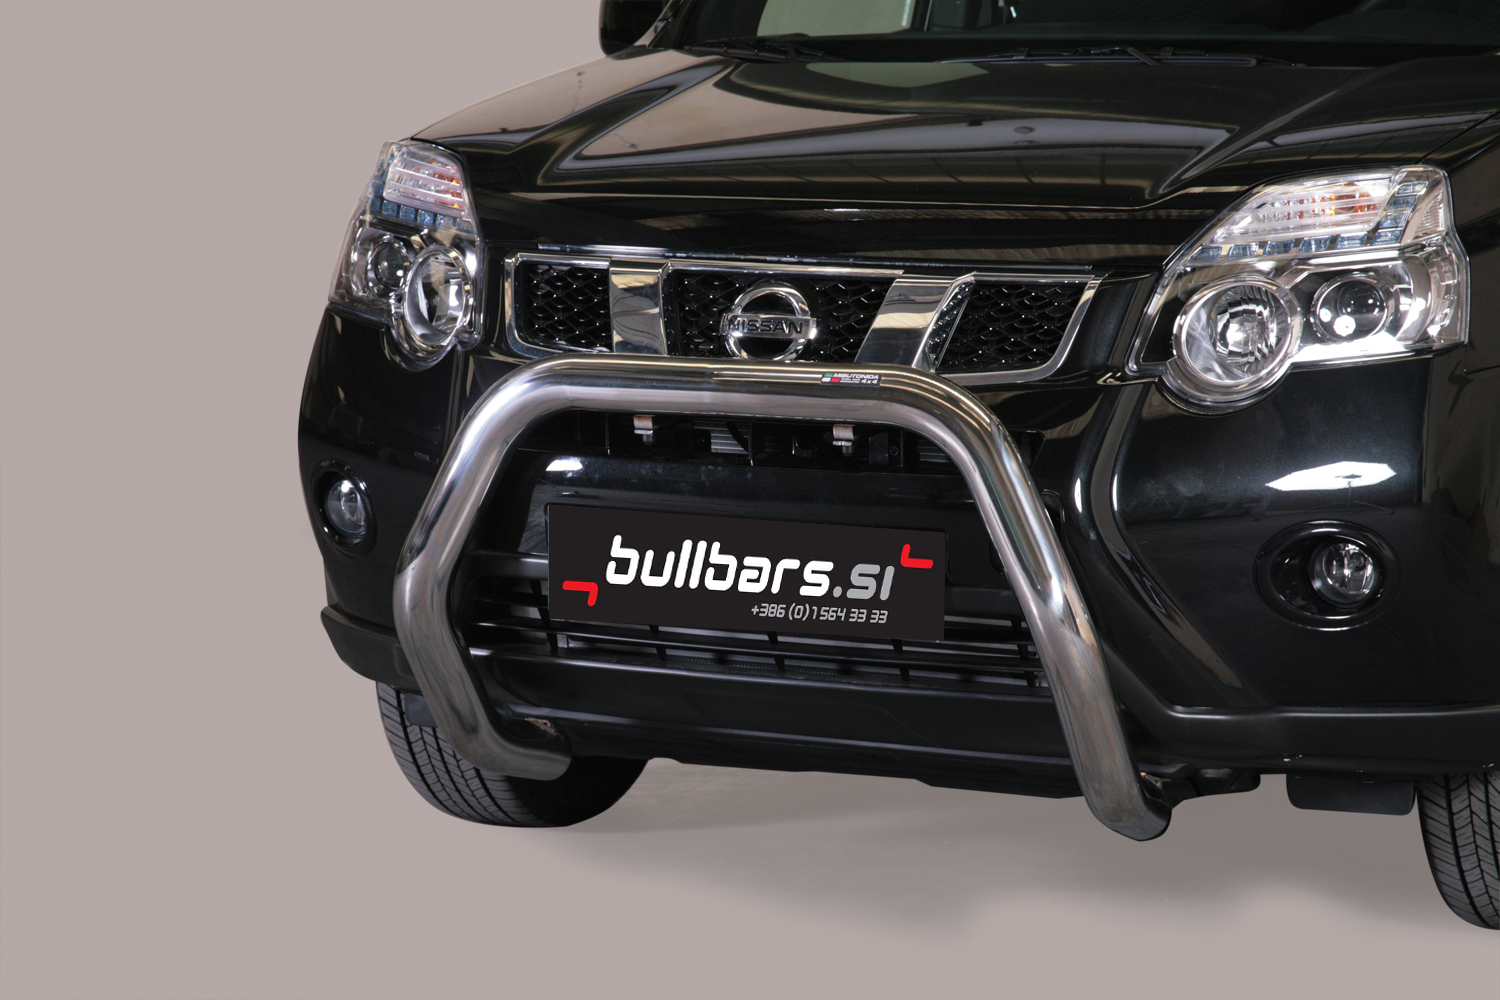 nissan x trail 2011 2014 eu inox bull bar fi76. Black Bedroom Furniture Sets. Home Design Ideas